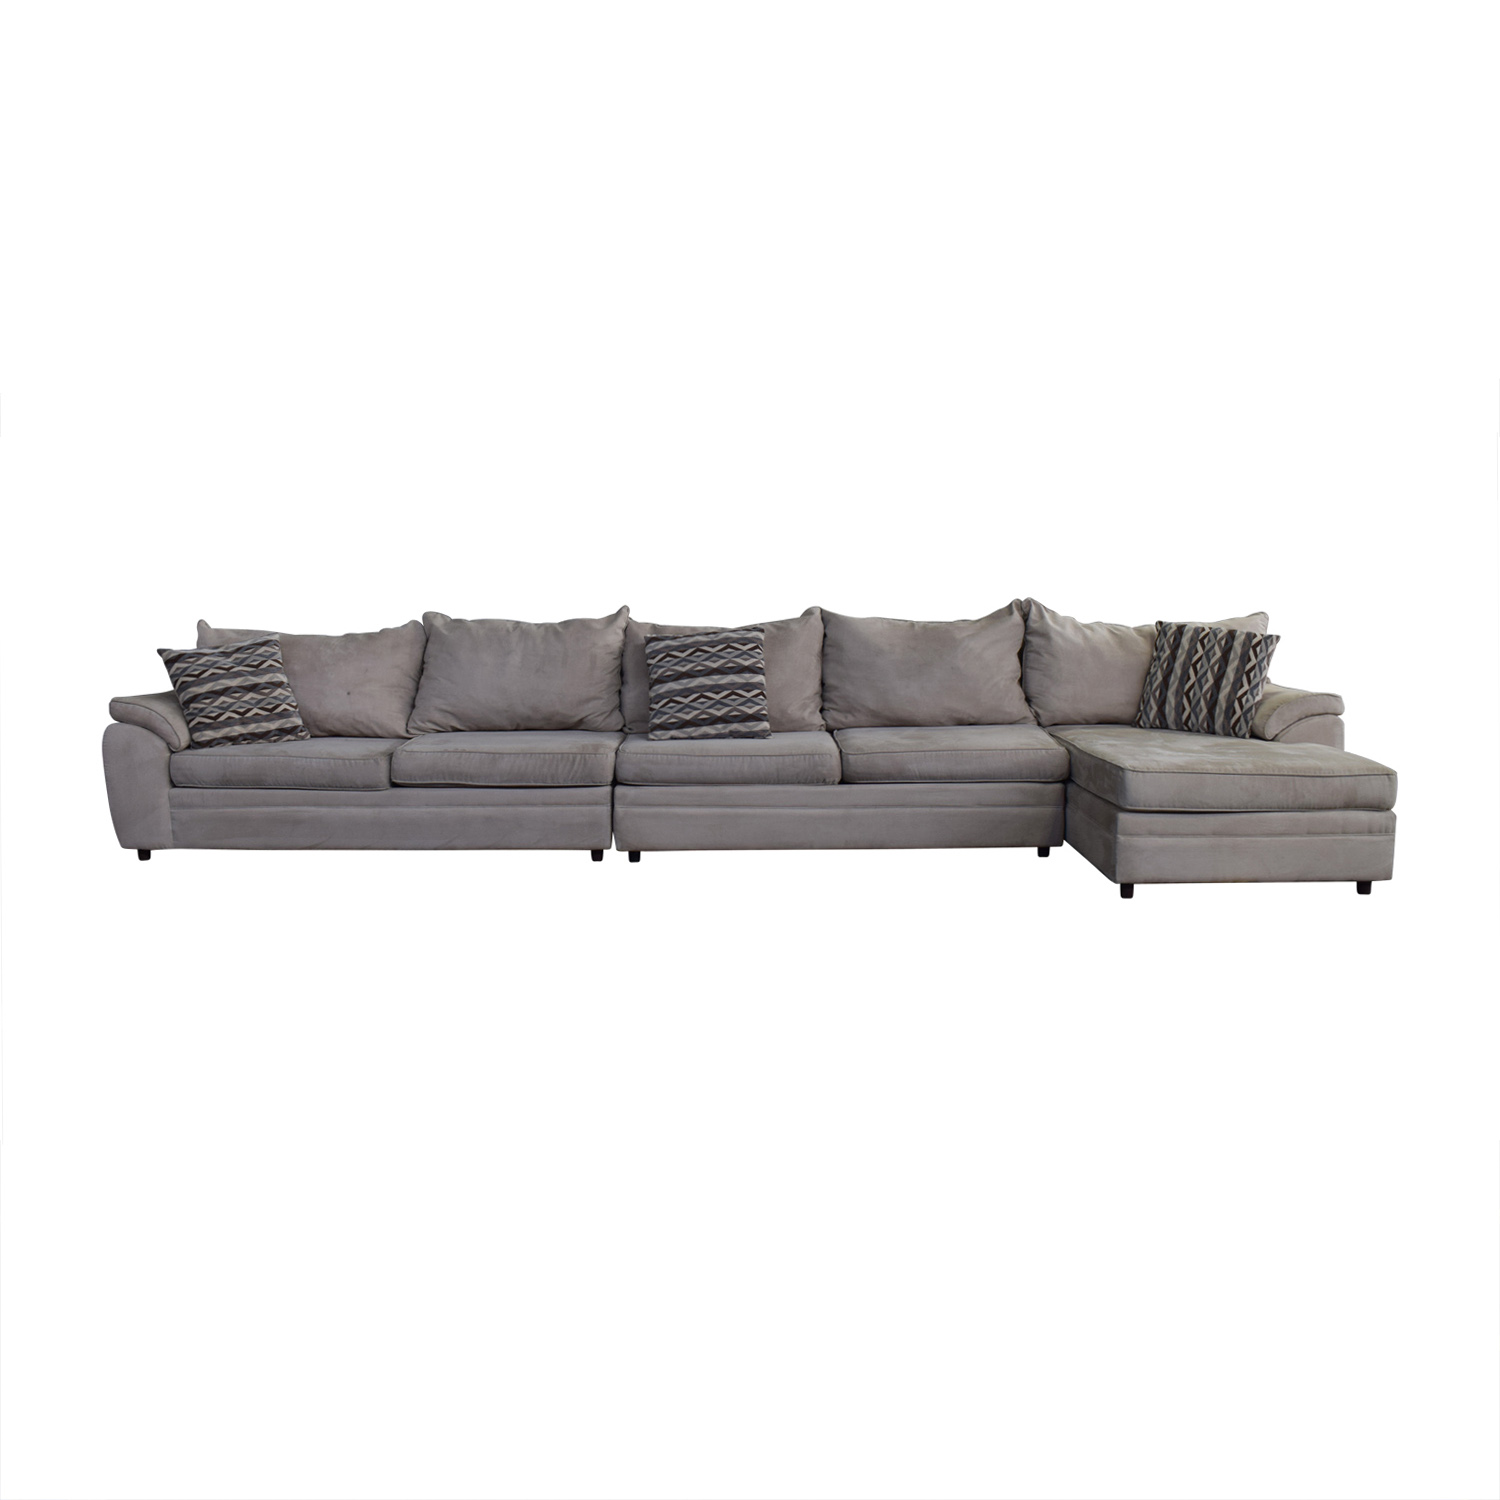 Bob's Discount Furniture Bob's Discount Furniture Beige Microfiber Chaise Sectional Sectionals